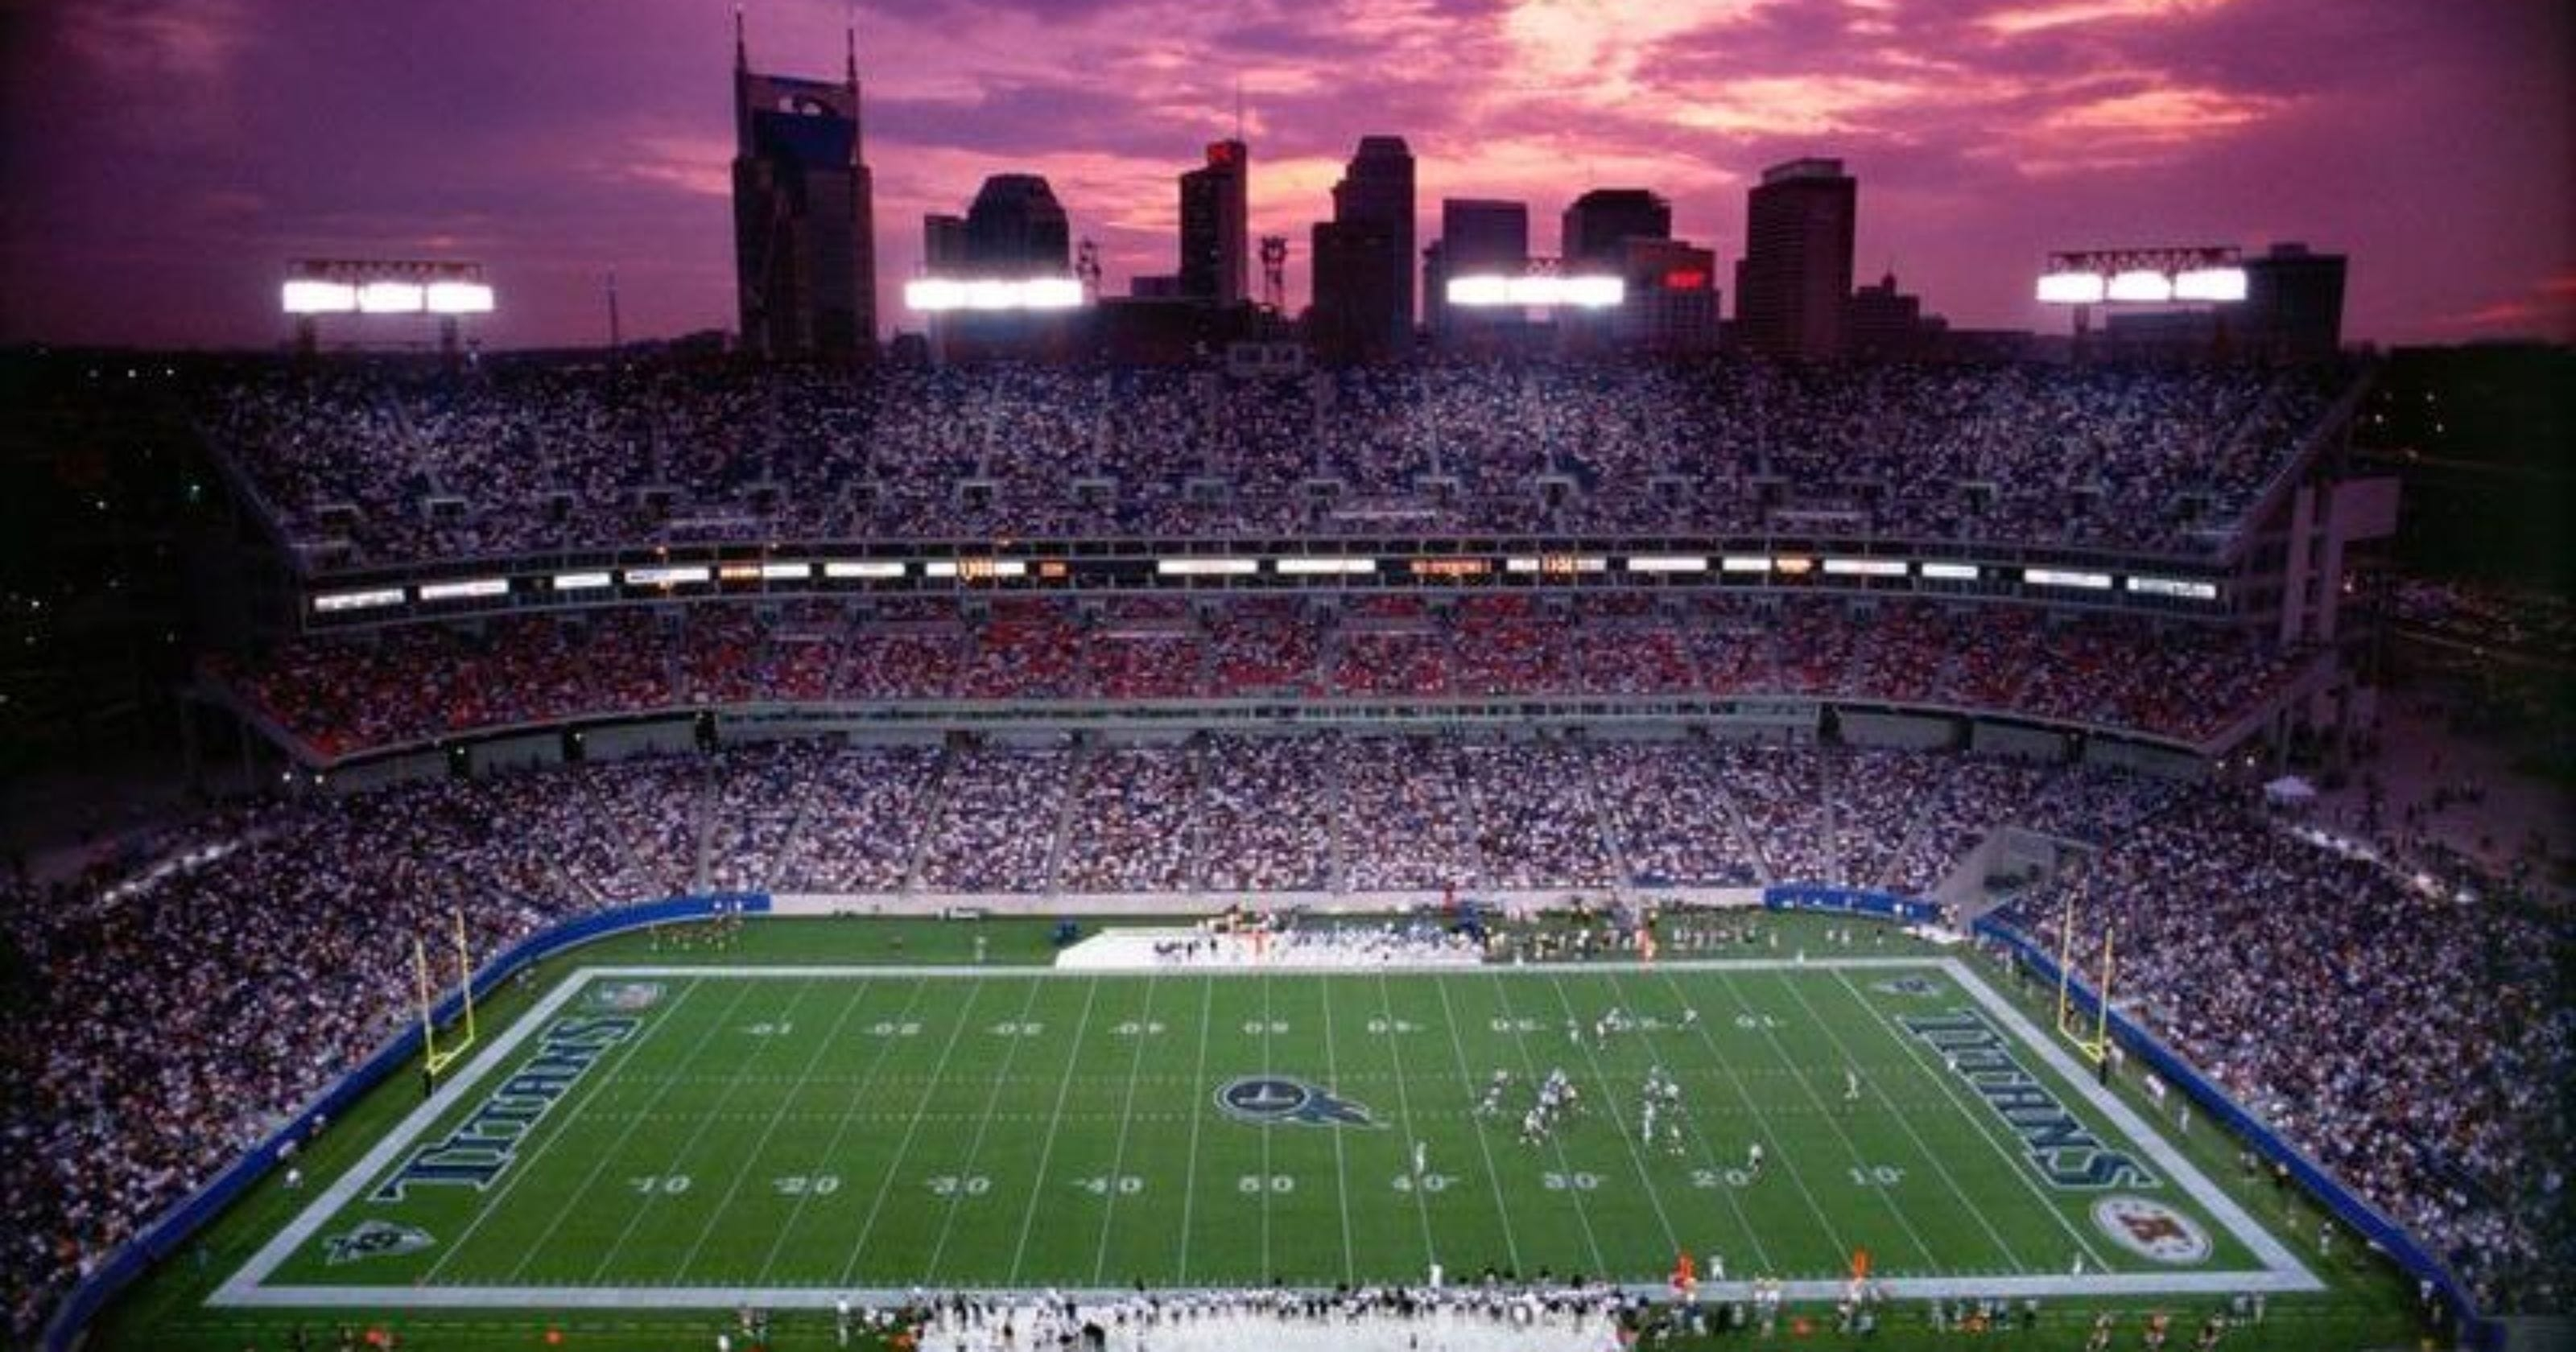 Don't Bet On Super Bowl For Nashville in Minimum Seating Capacity For Super Bowl